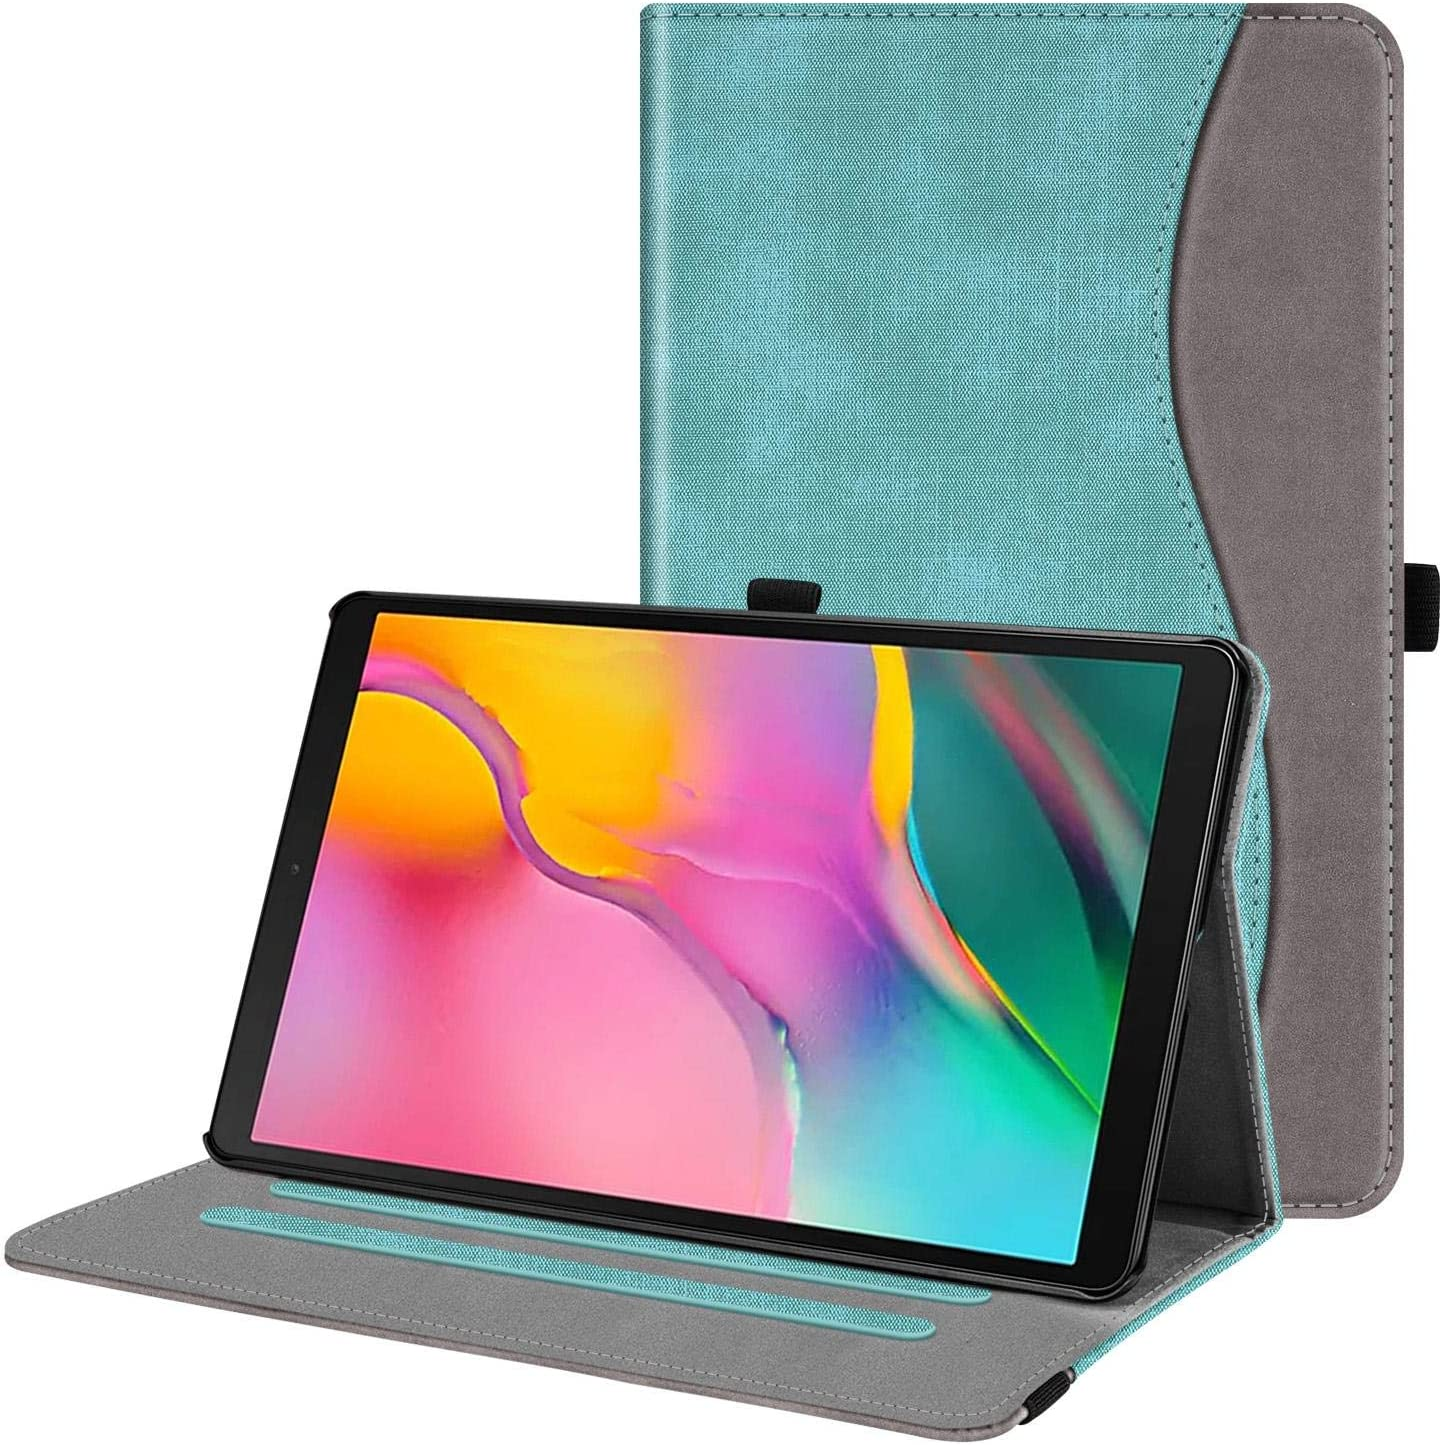 Fintie Case for Samsung Galaxy Tab A 10.1 2019 Model SM-T510(Wi-Fi) SM-T515(LTE) SM-T517(Sprint), Multi-Angle Viewing Stand Cover with Pocket, Denim Turquoise